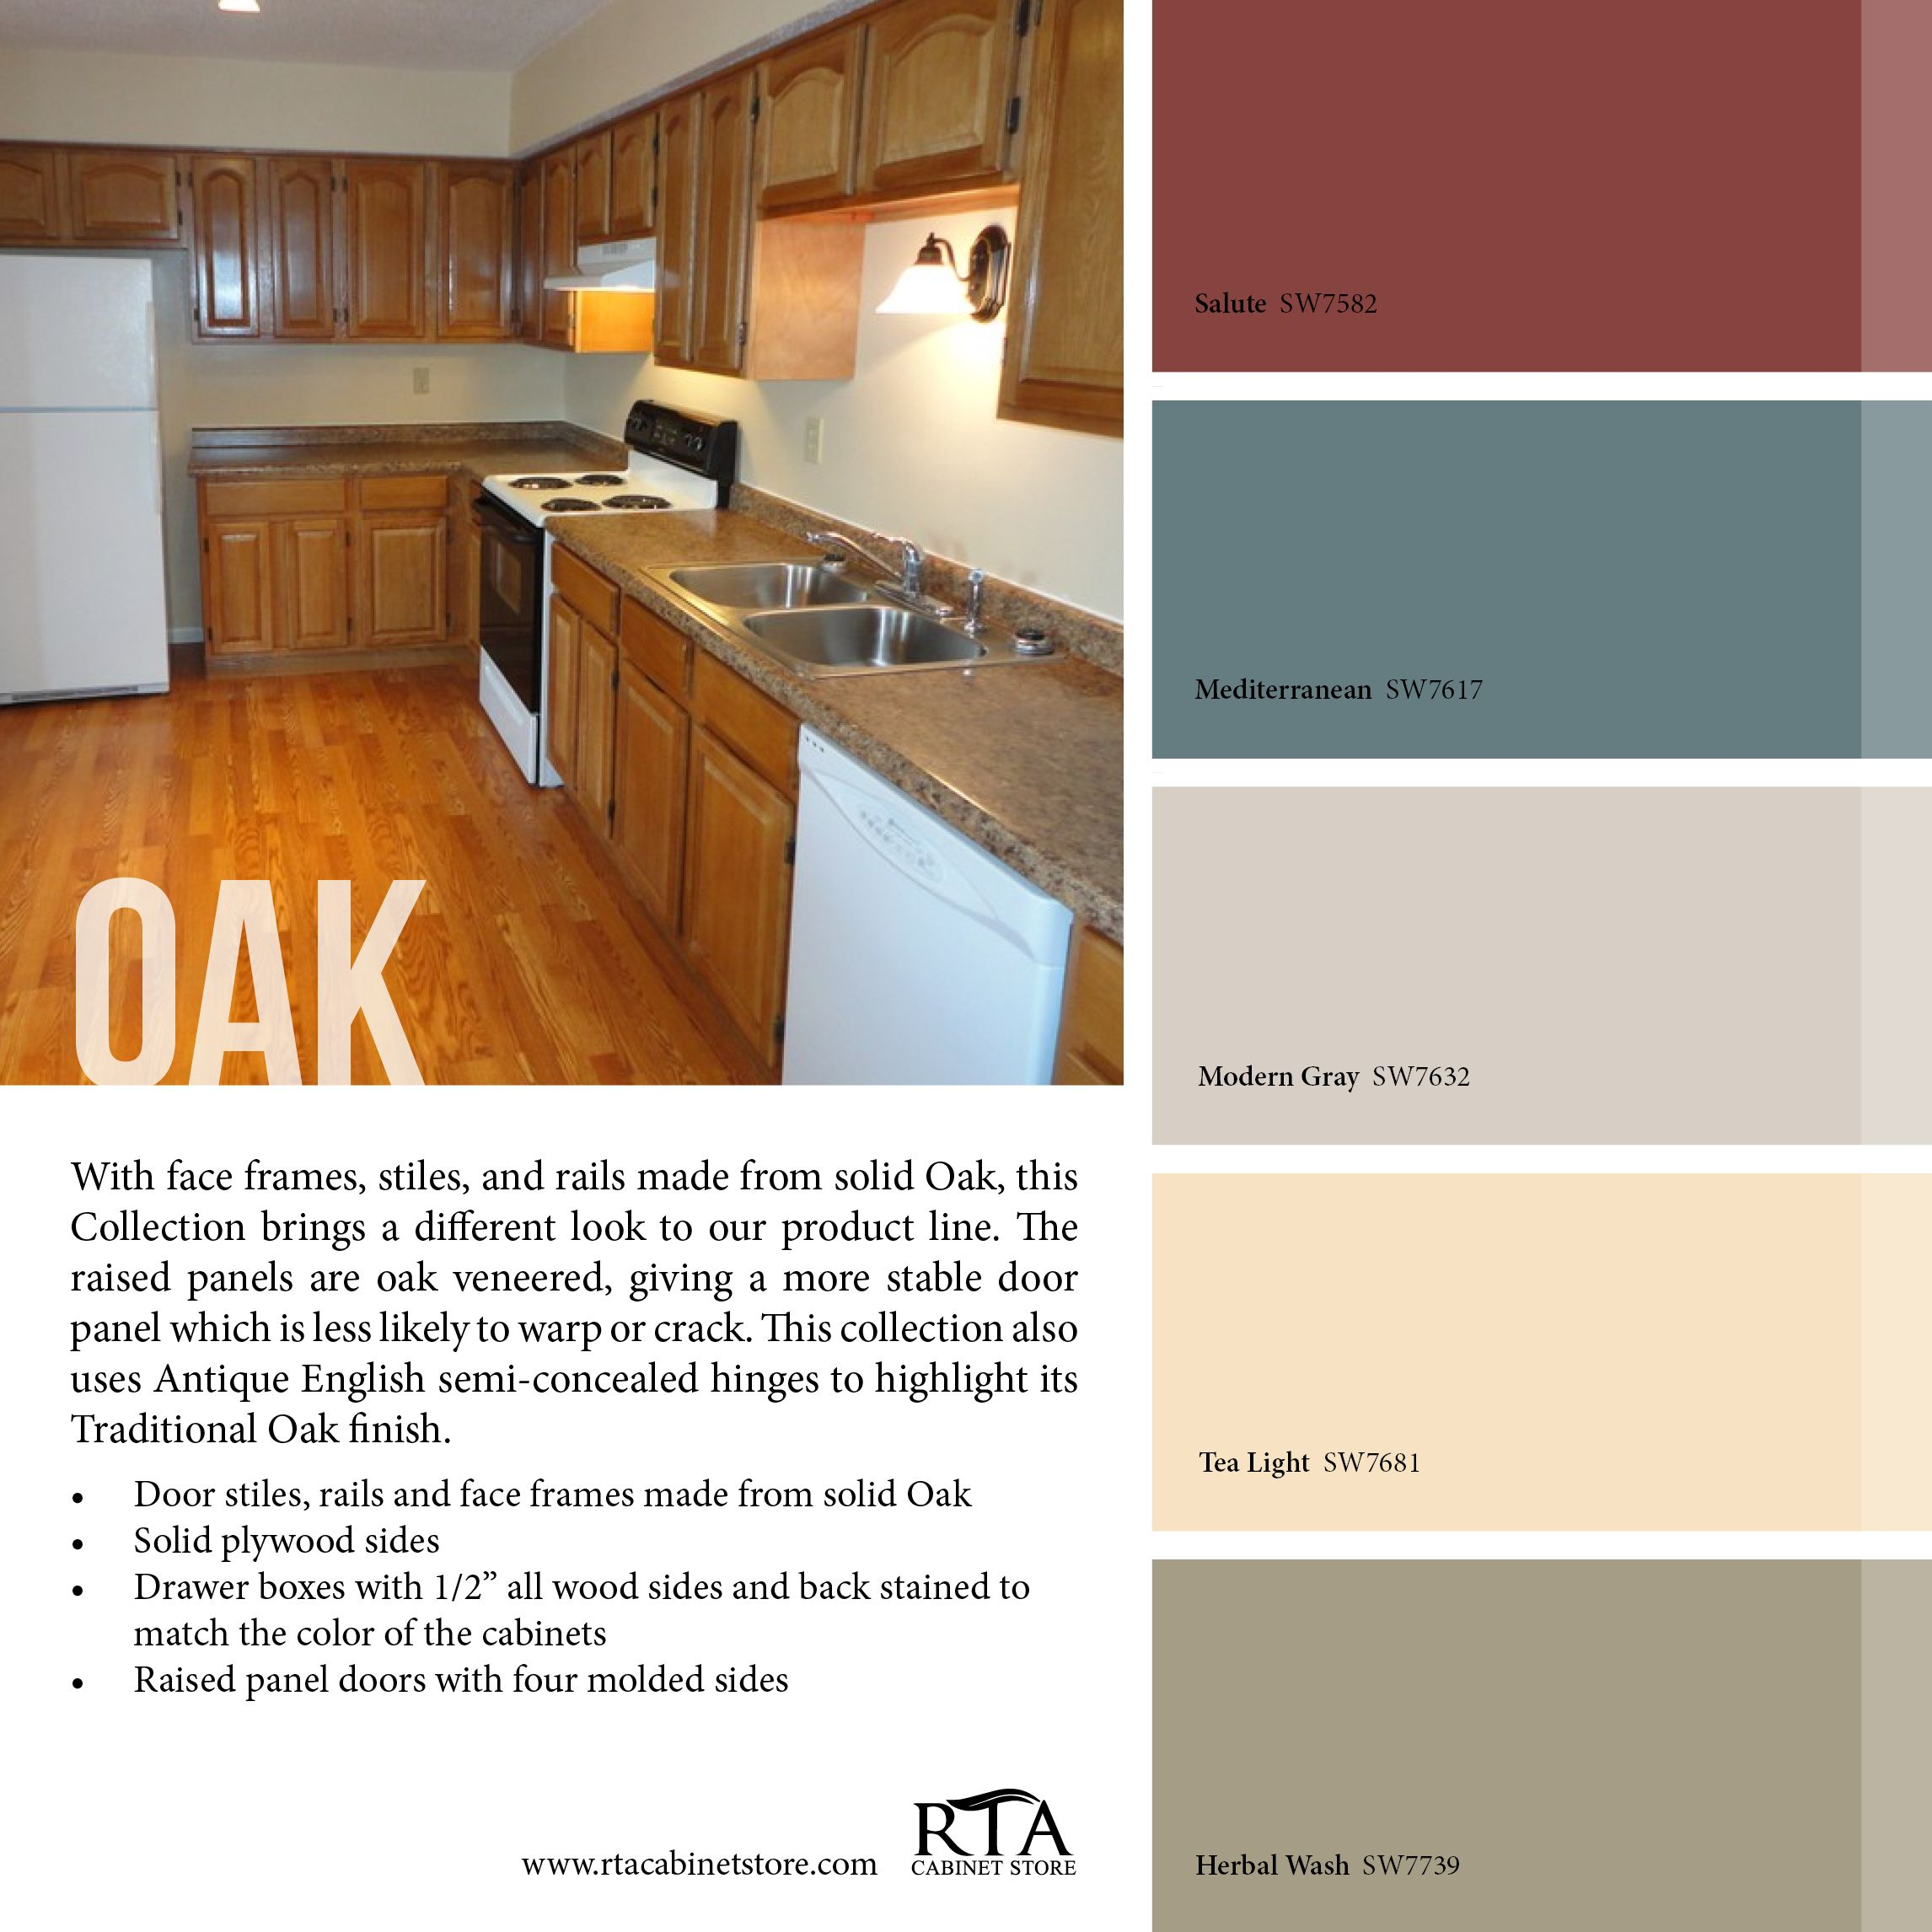 Color Palette To Go With Oak Kitchen Cabinet Line For Those With Oak Kitchen Wall Colors Kitchen Colour Schemes Light Oak Cabinets